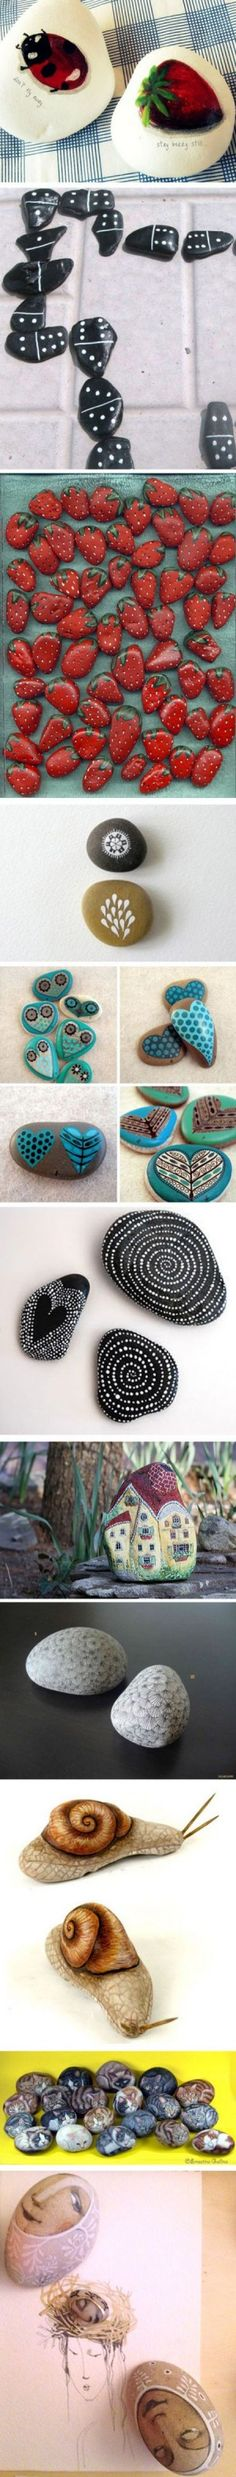 DIY Painted Stones Ideas